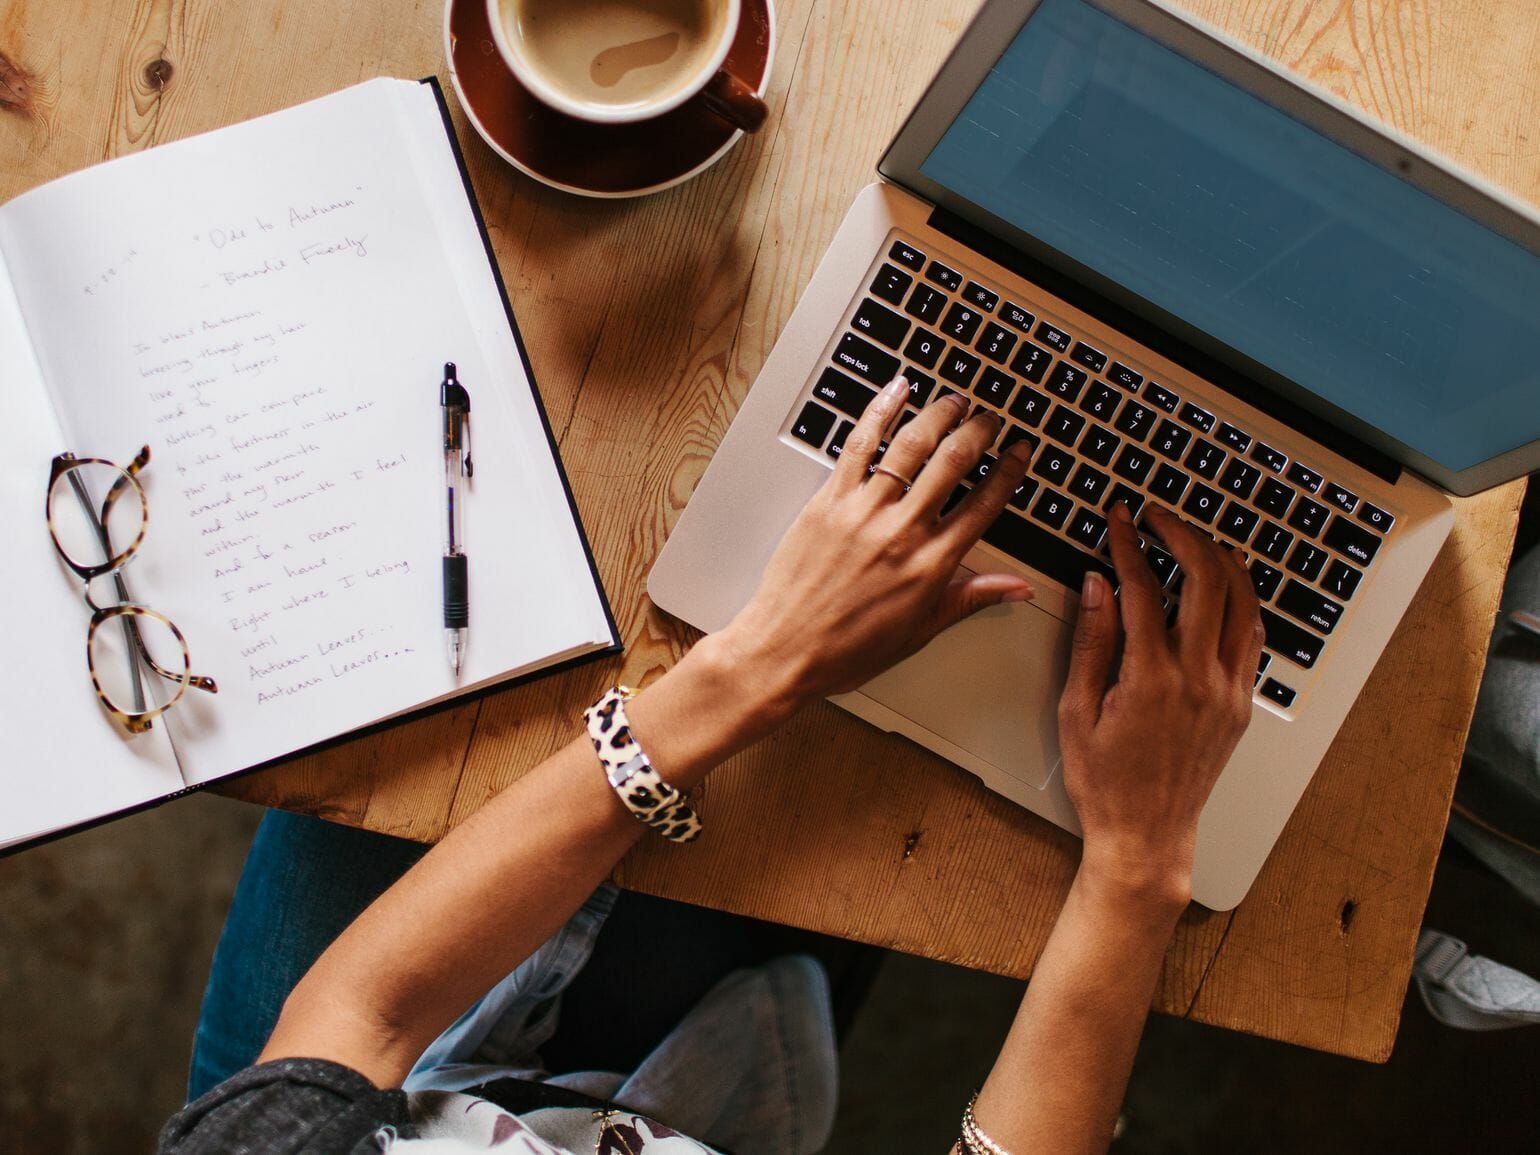 Short Story Contest from Writers' Mastermind Online in 2021